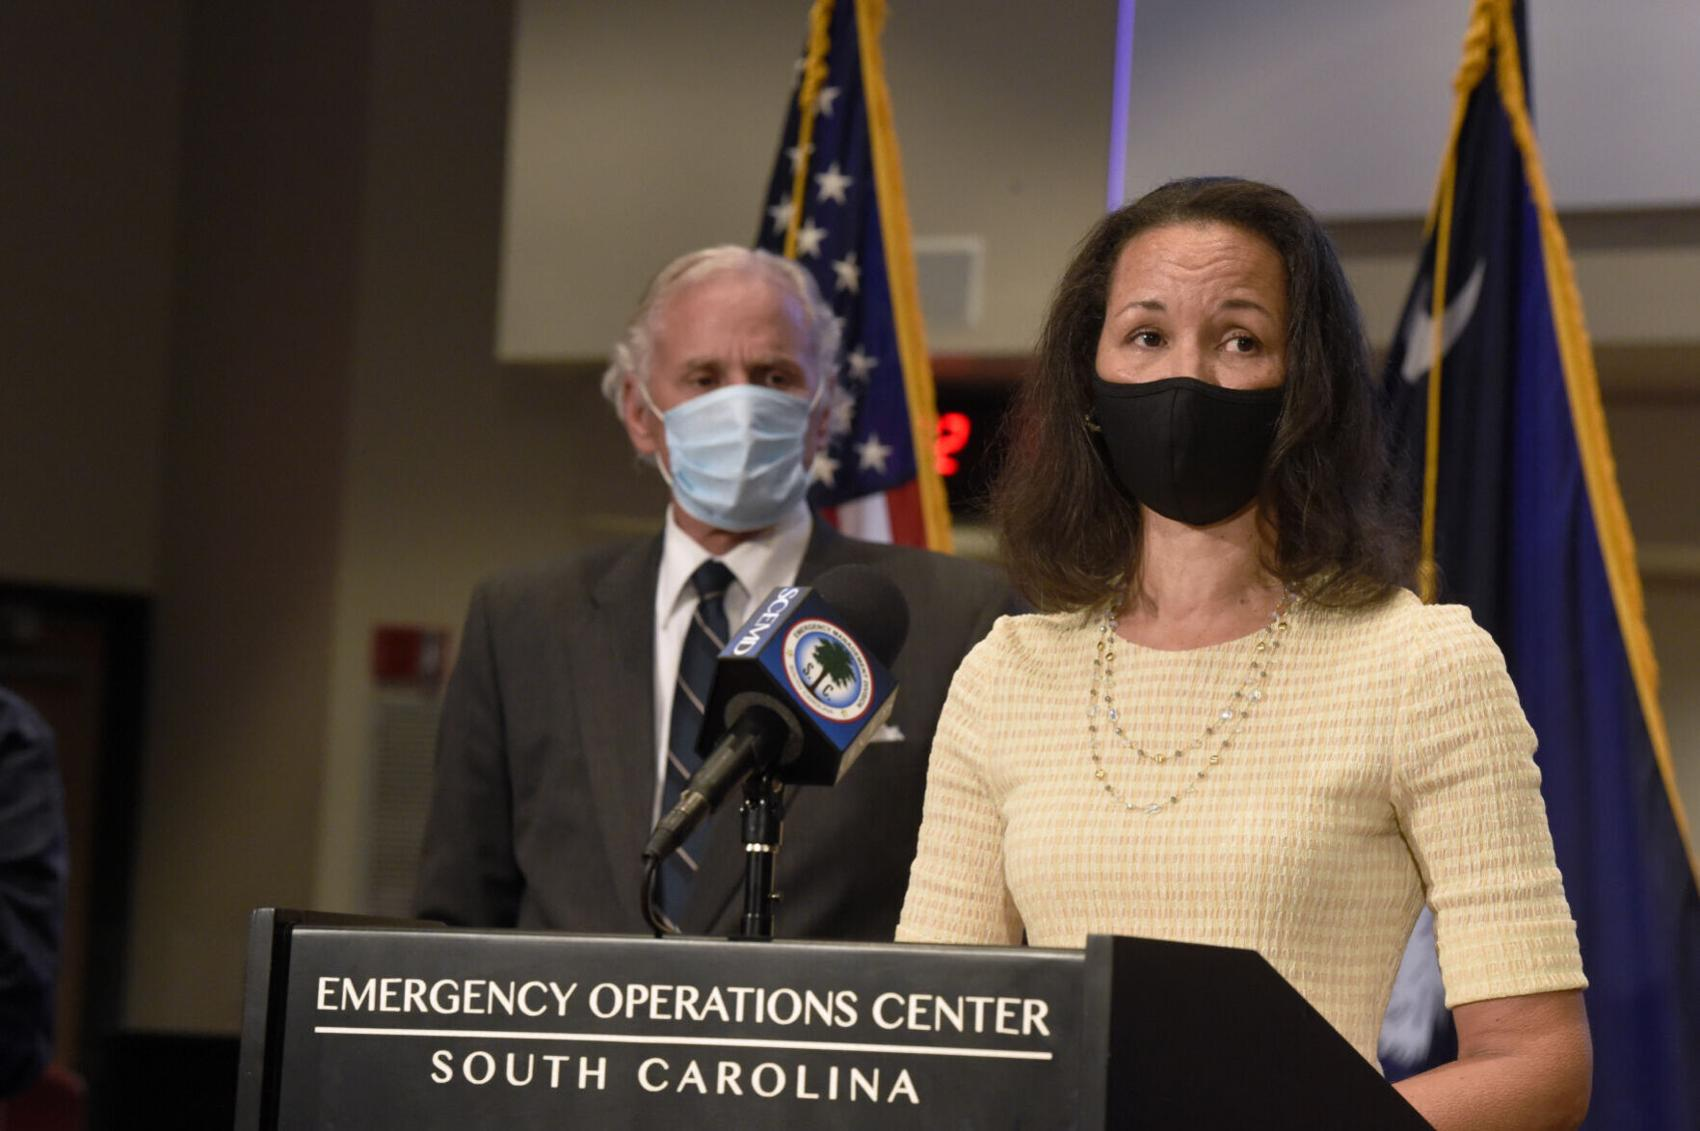 POST AND COURIER – South Carolina's health agency is missing permanent leader as coronavirus pandemic worsens